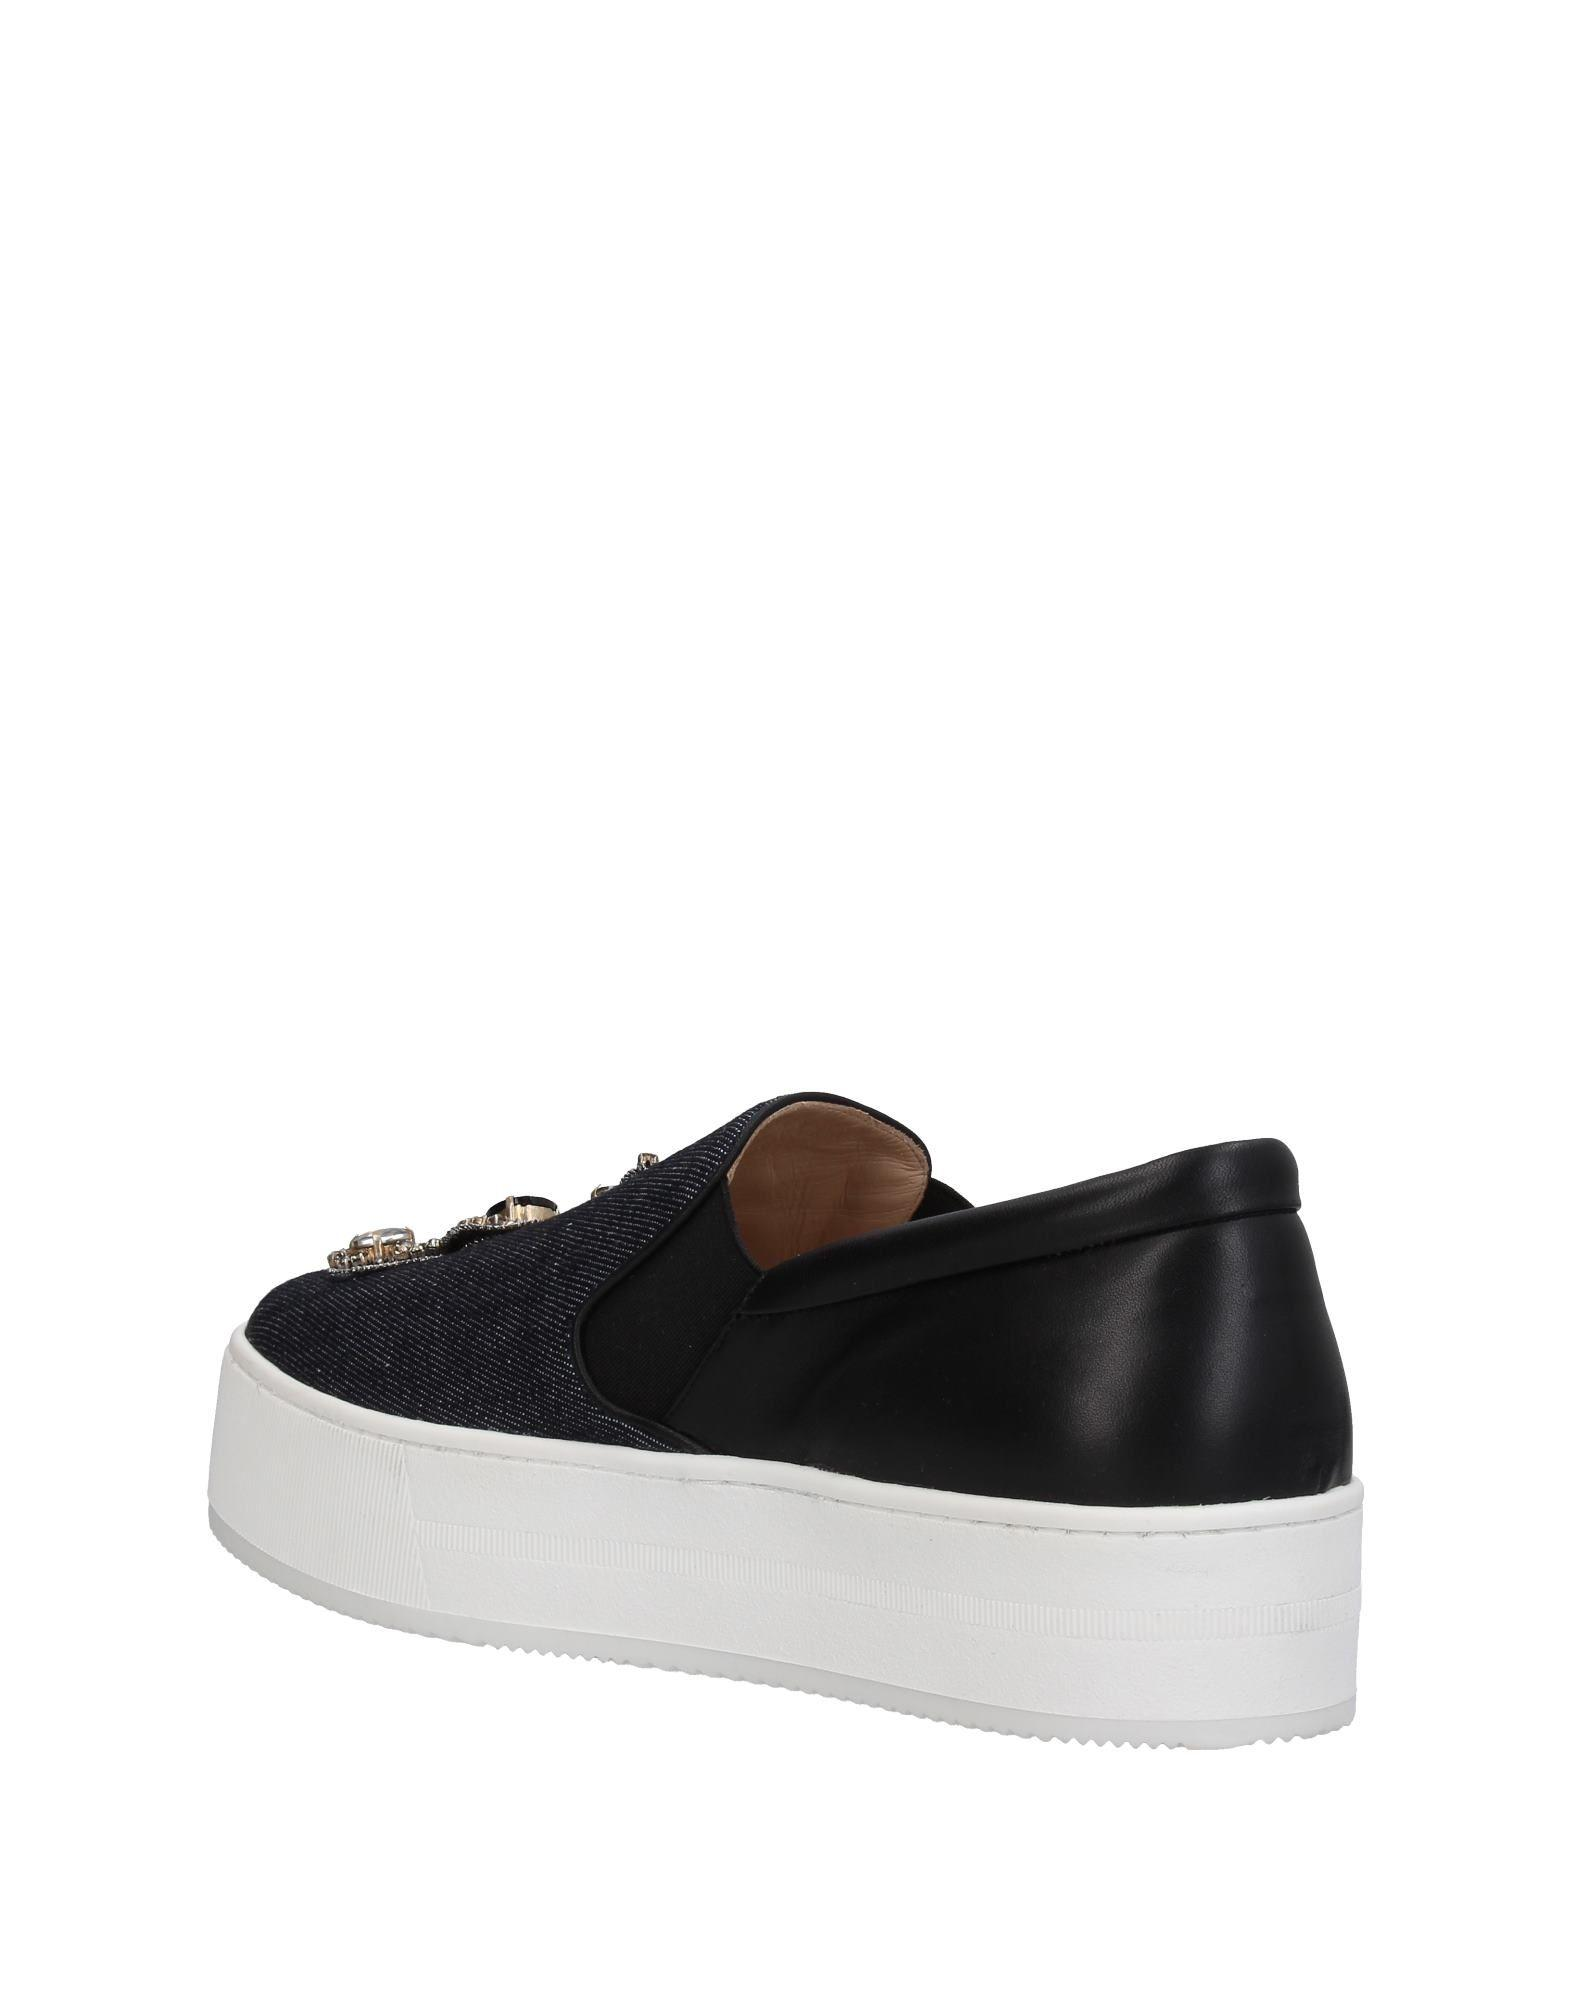 N°21 Leather Low-tops & Sneakers in Blue